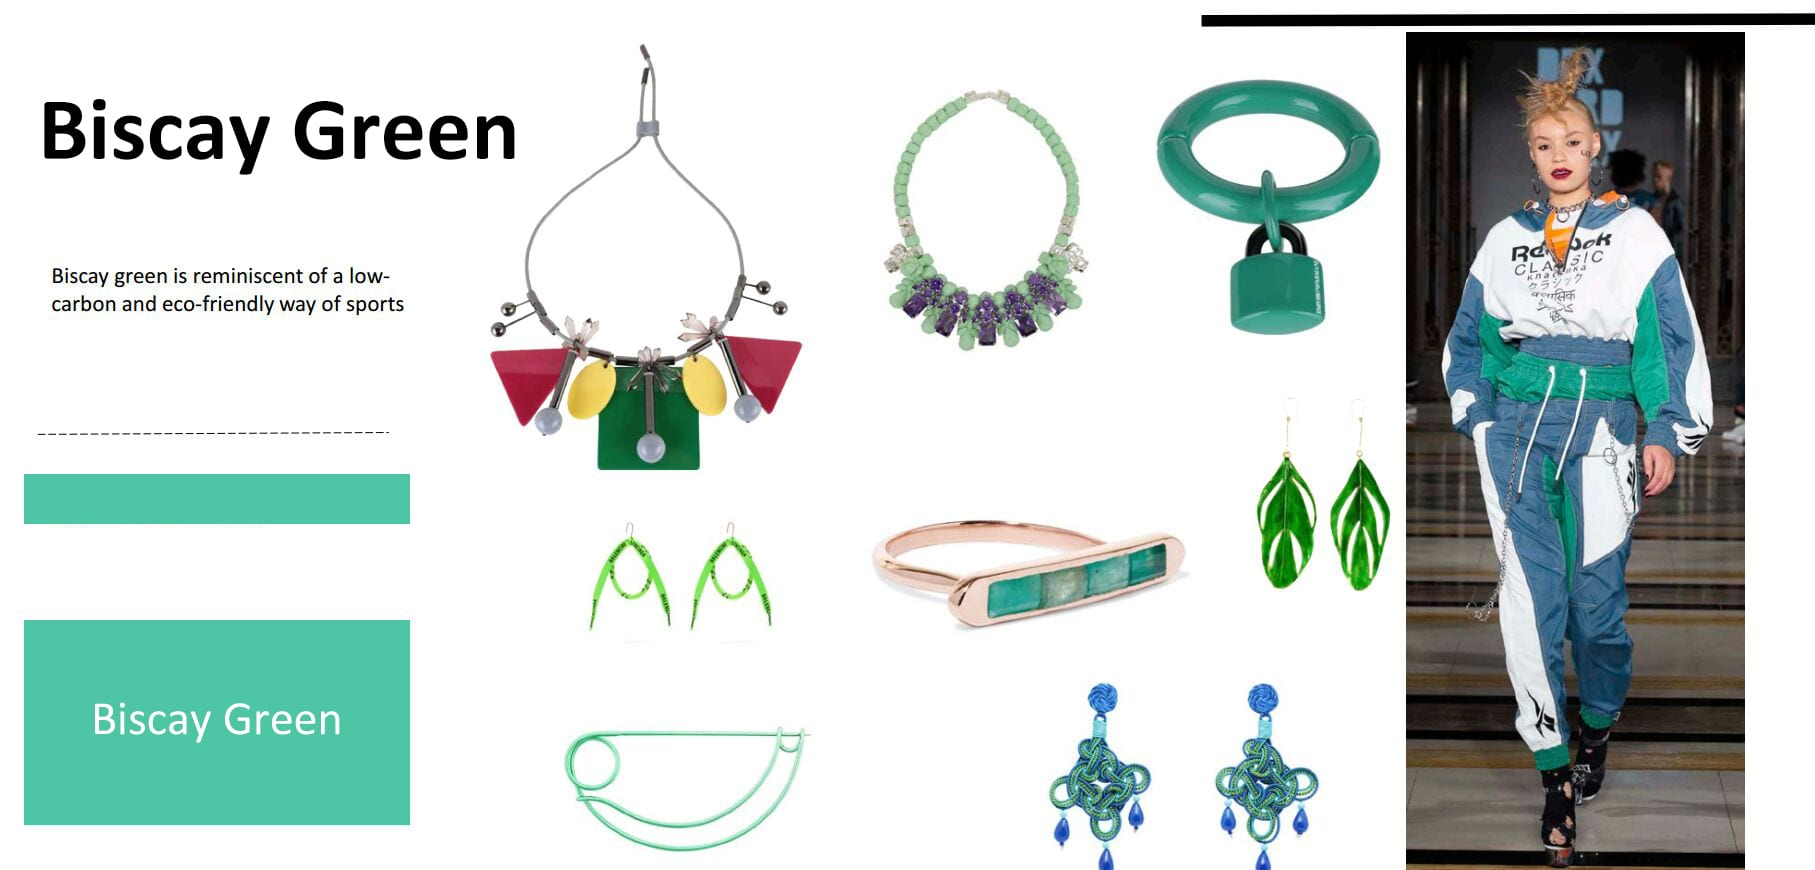 Jewelry Trends For 2020.The 4 Jewelry Trends You Must Know For 2020 Nihaojewelry Blog